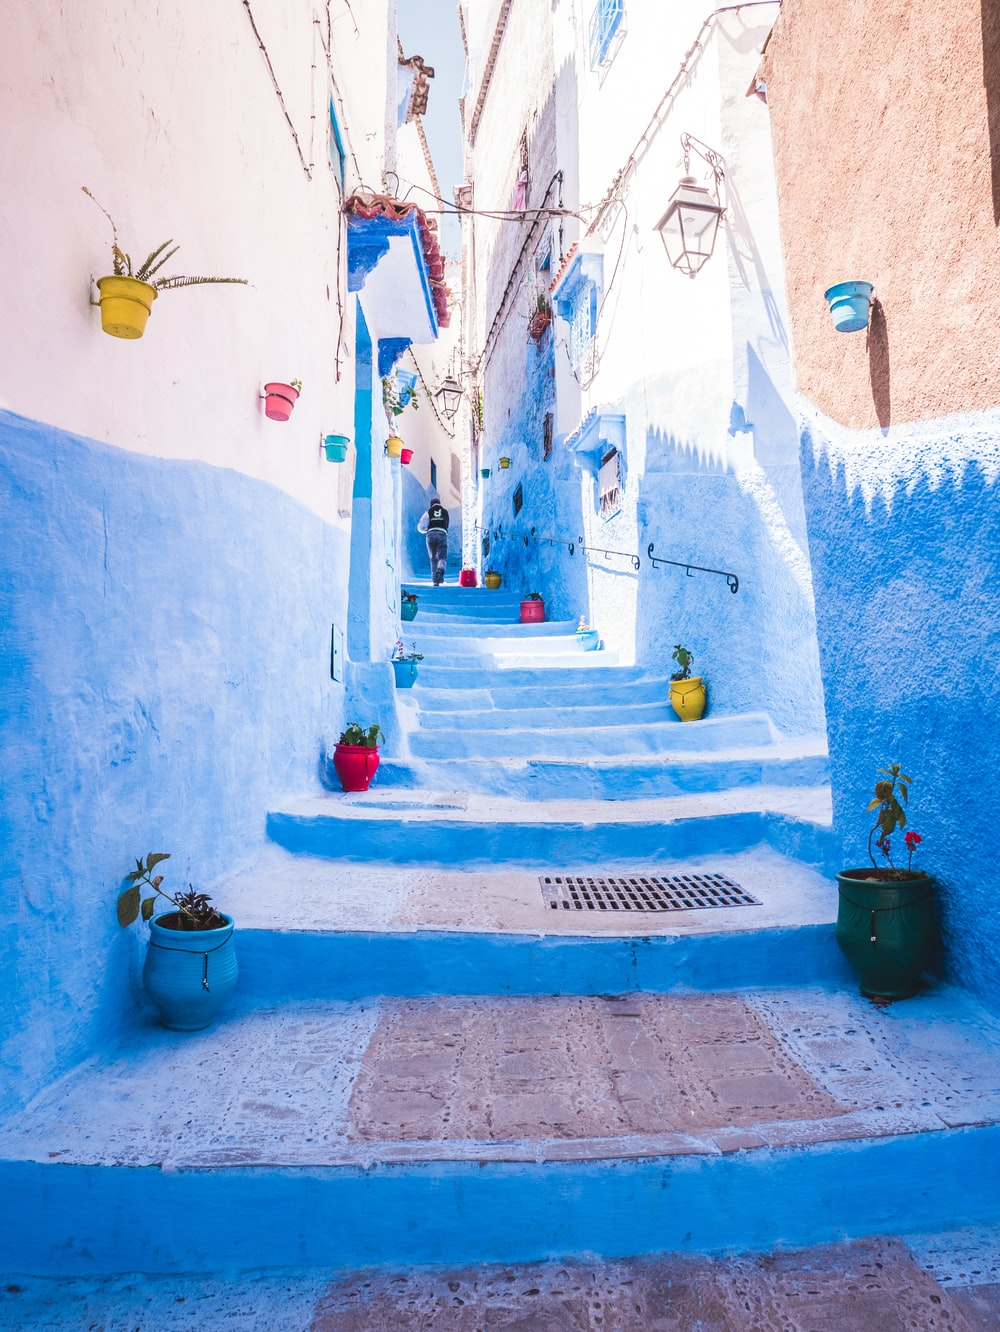 Best 100+ Morocco Pictures [Stunning] | Download Free Images on Unsplash